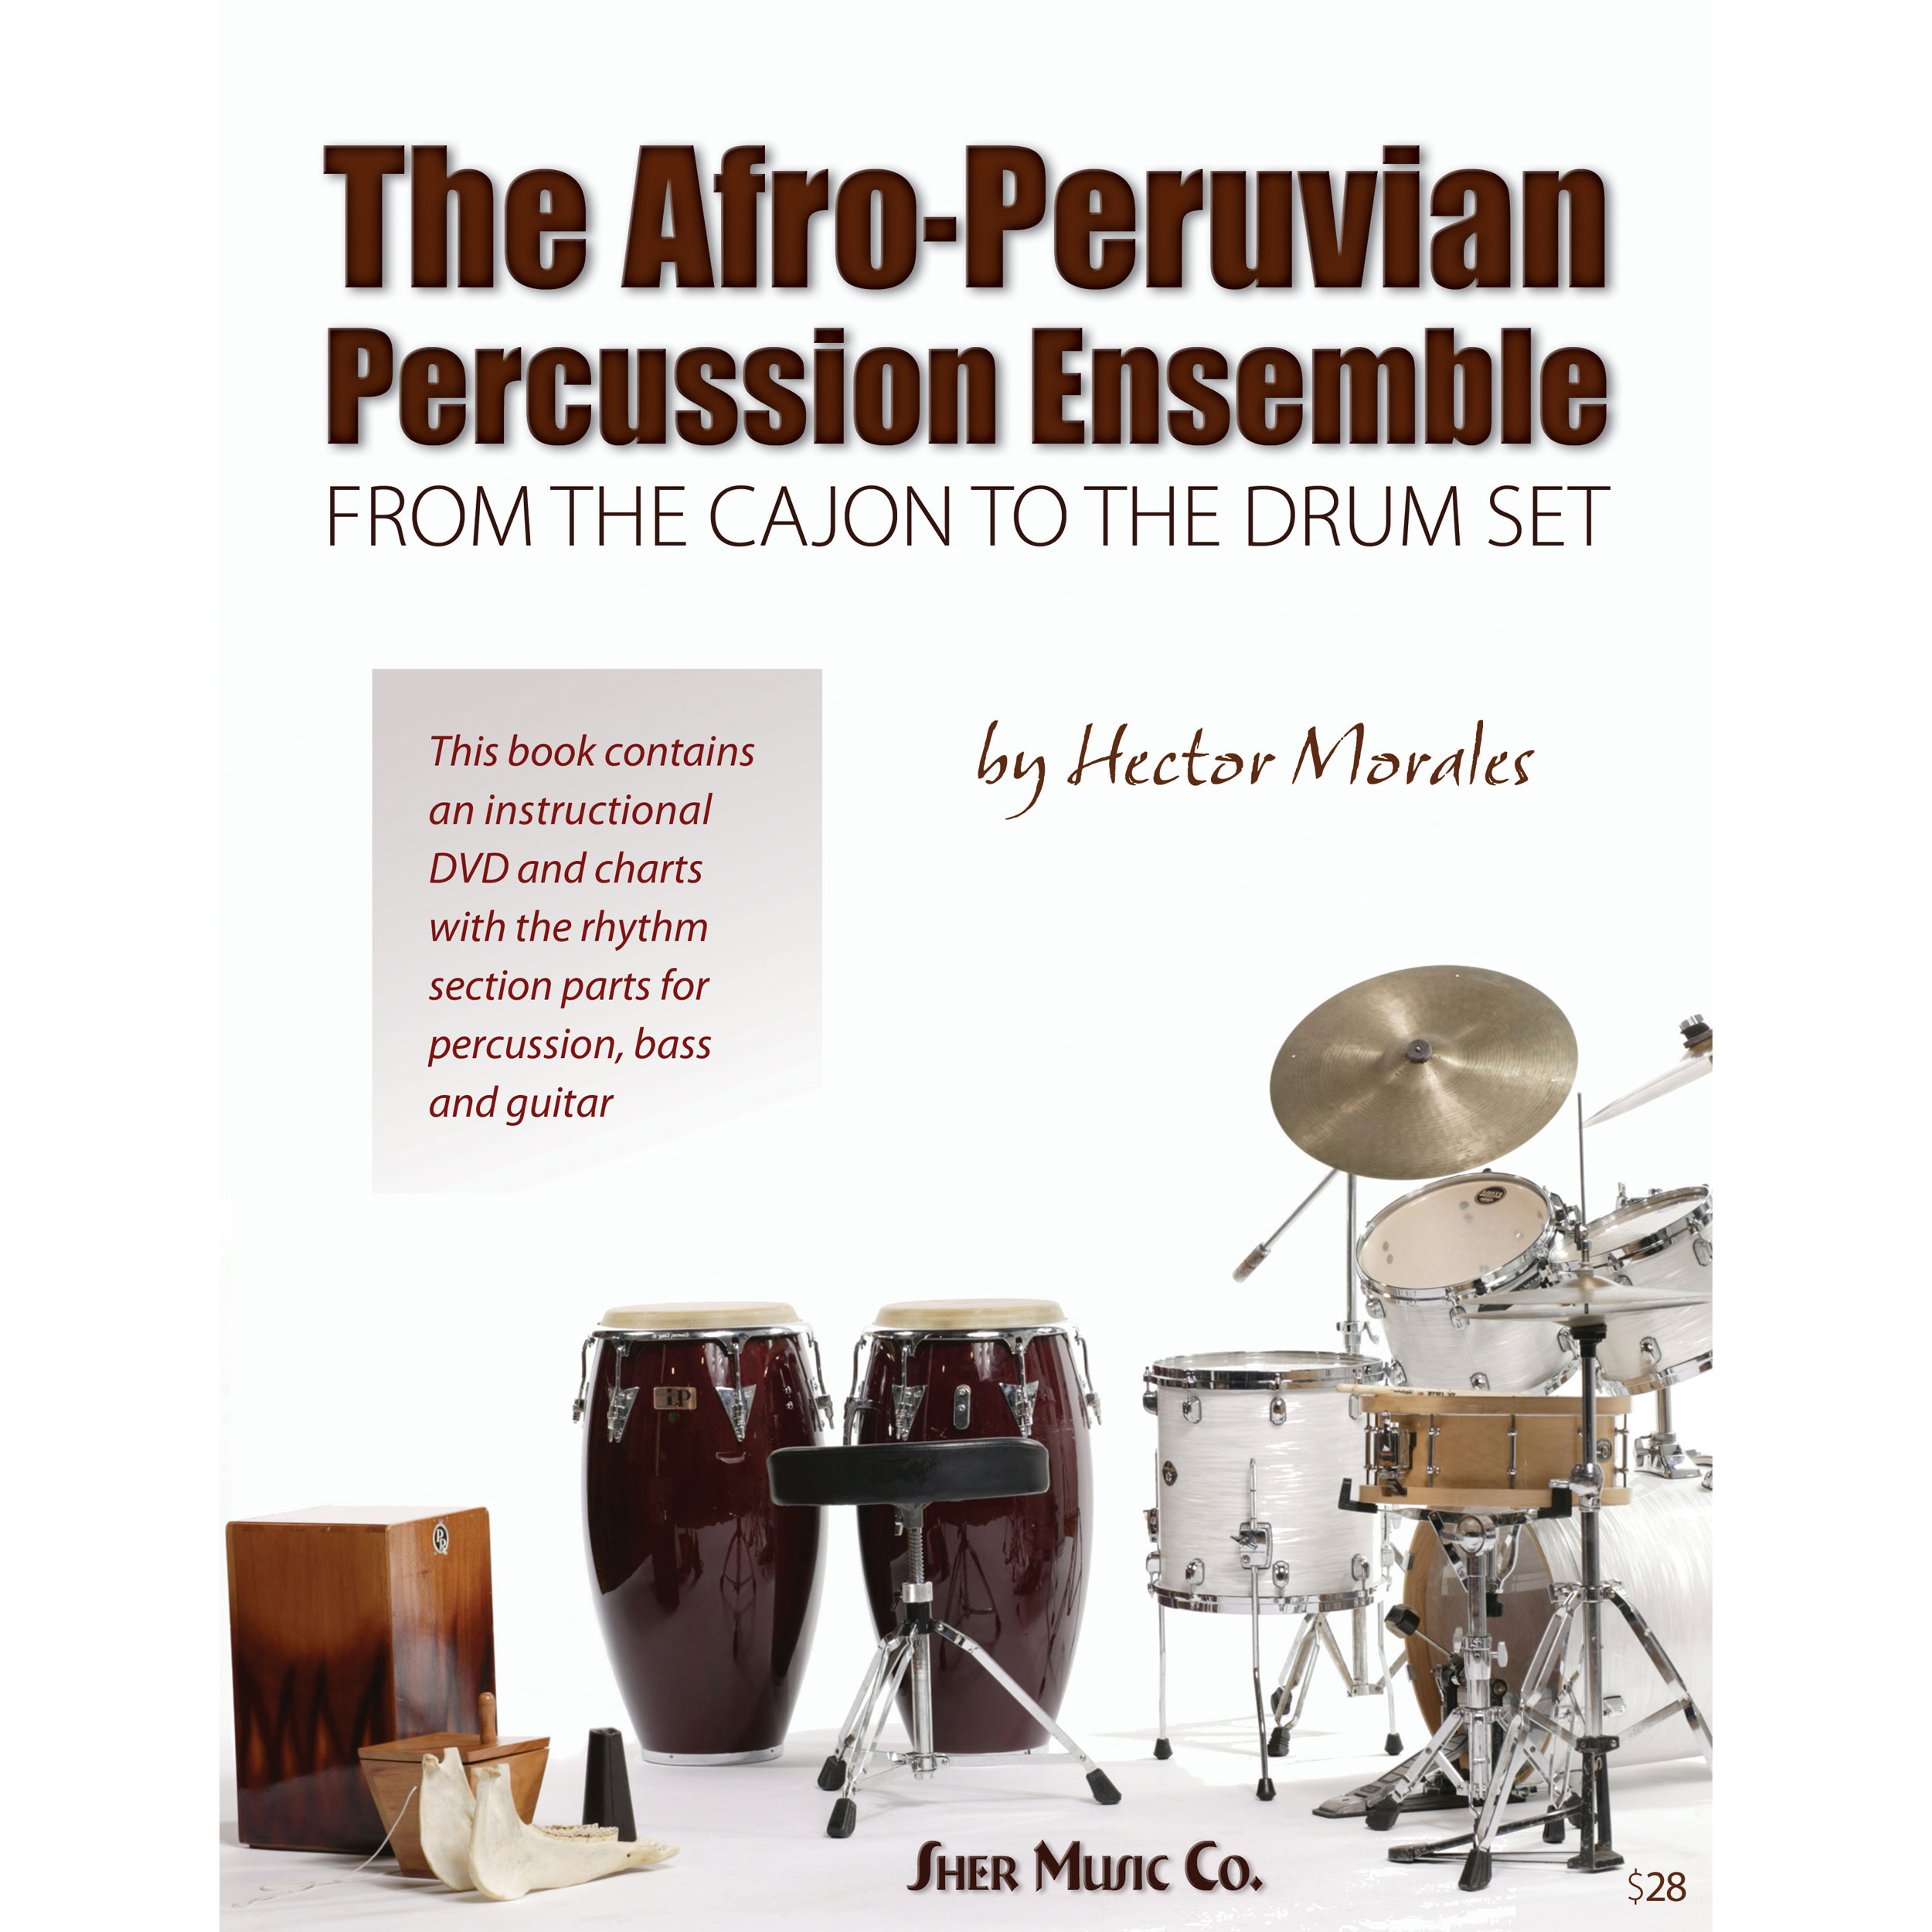 The Afro-Peruvian Percussion Ensemble by Hector Morales